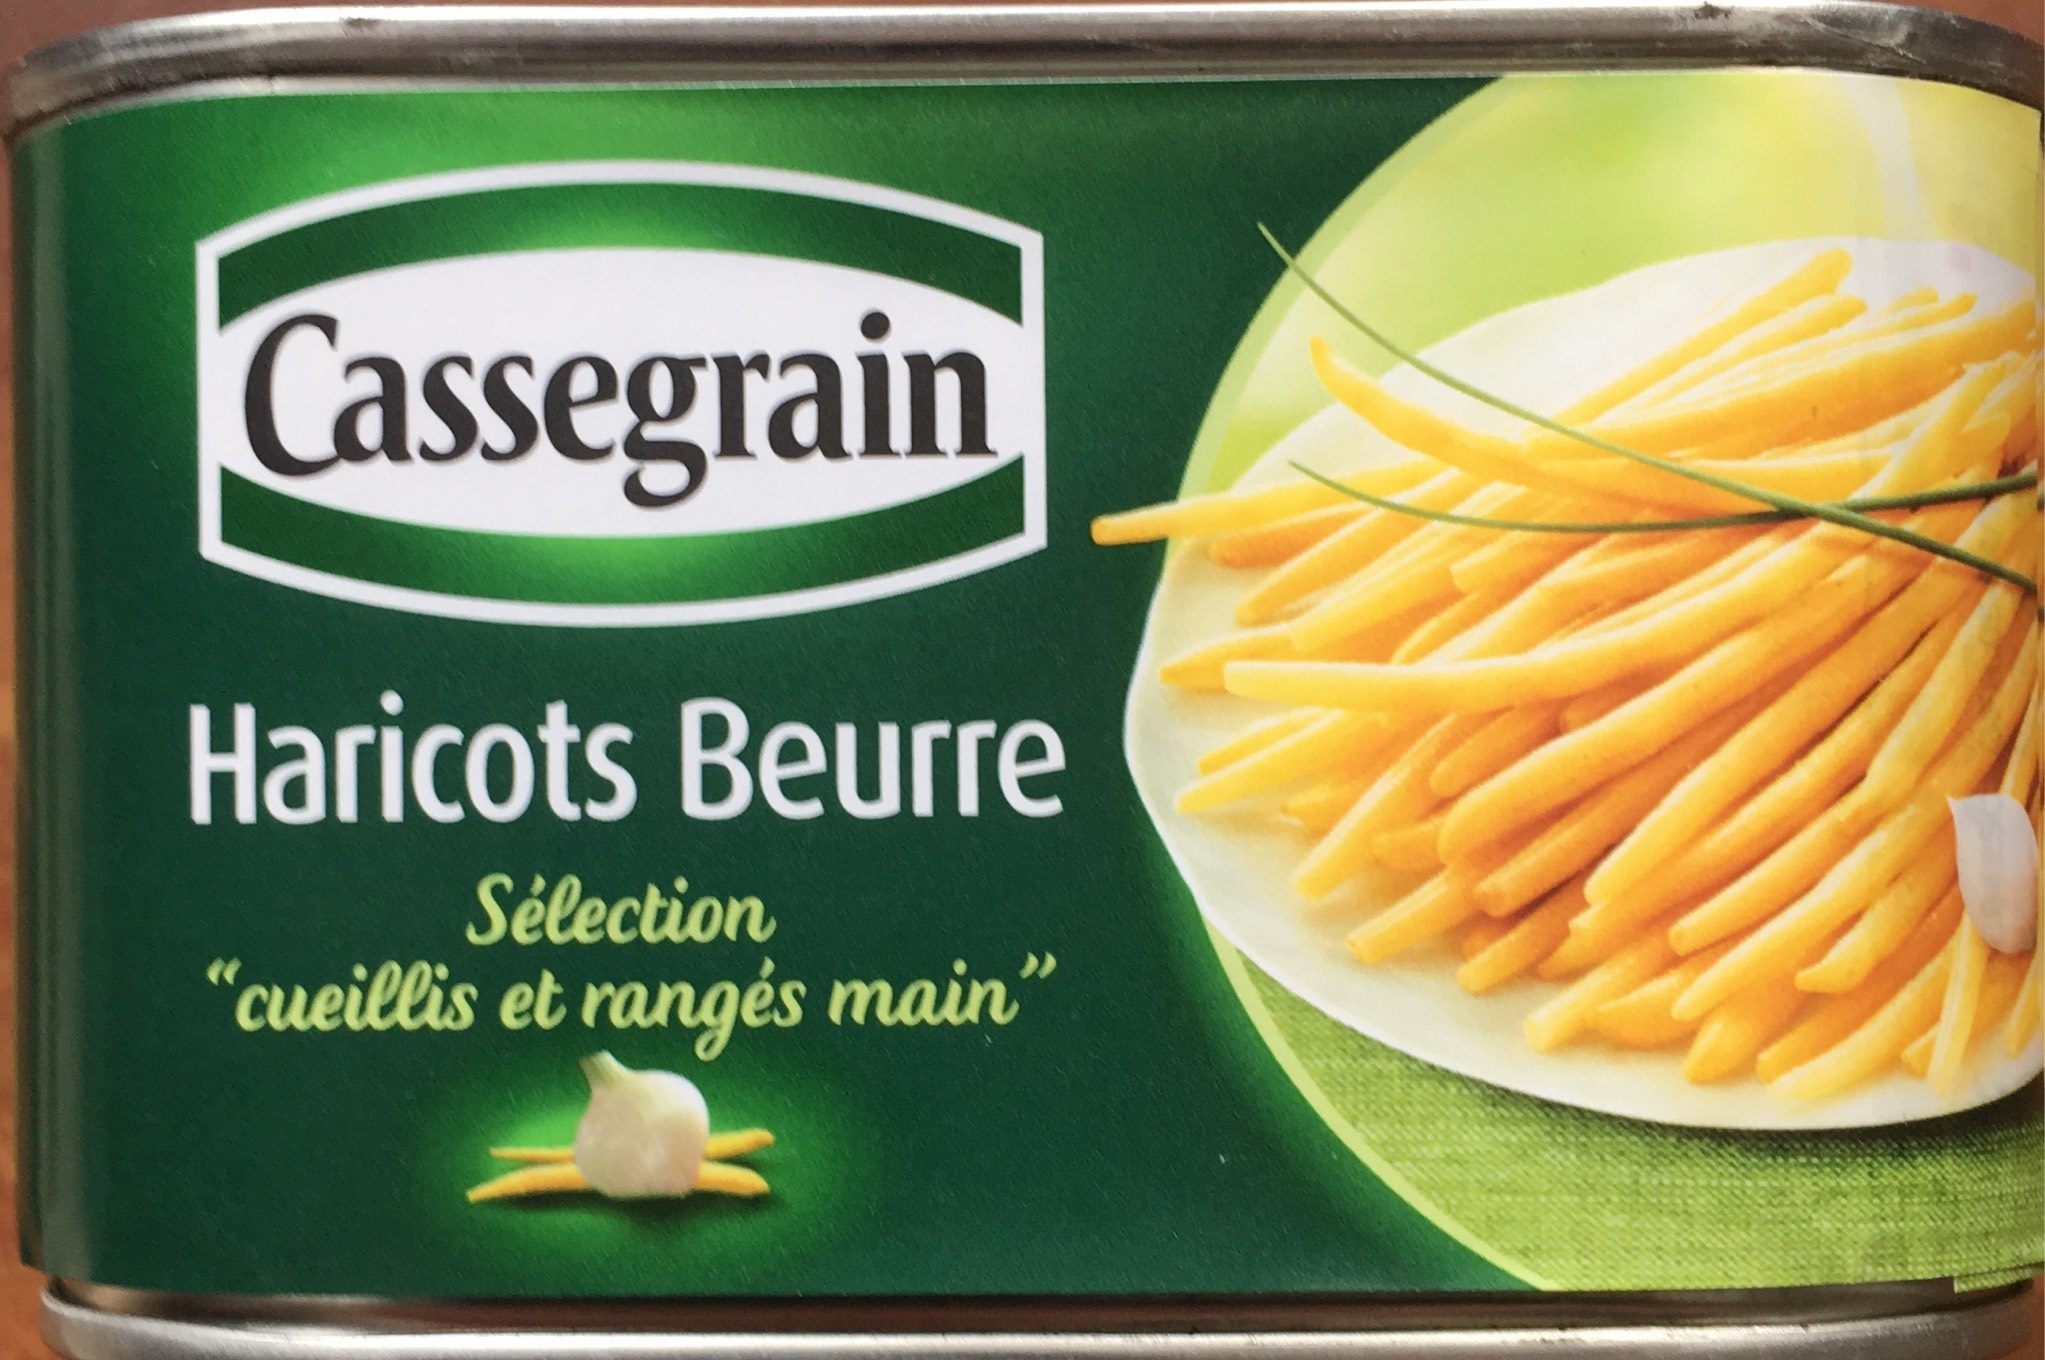 Haricots beurre - Product - fr